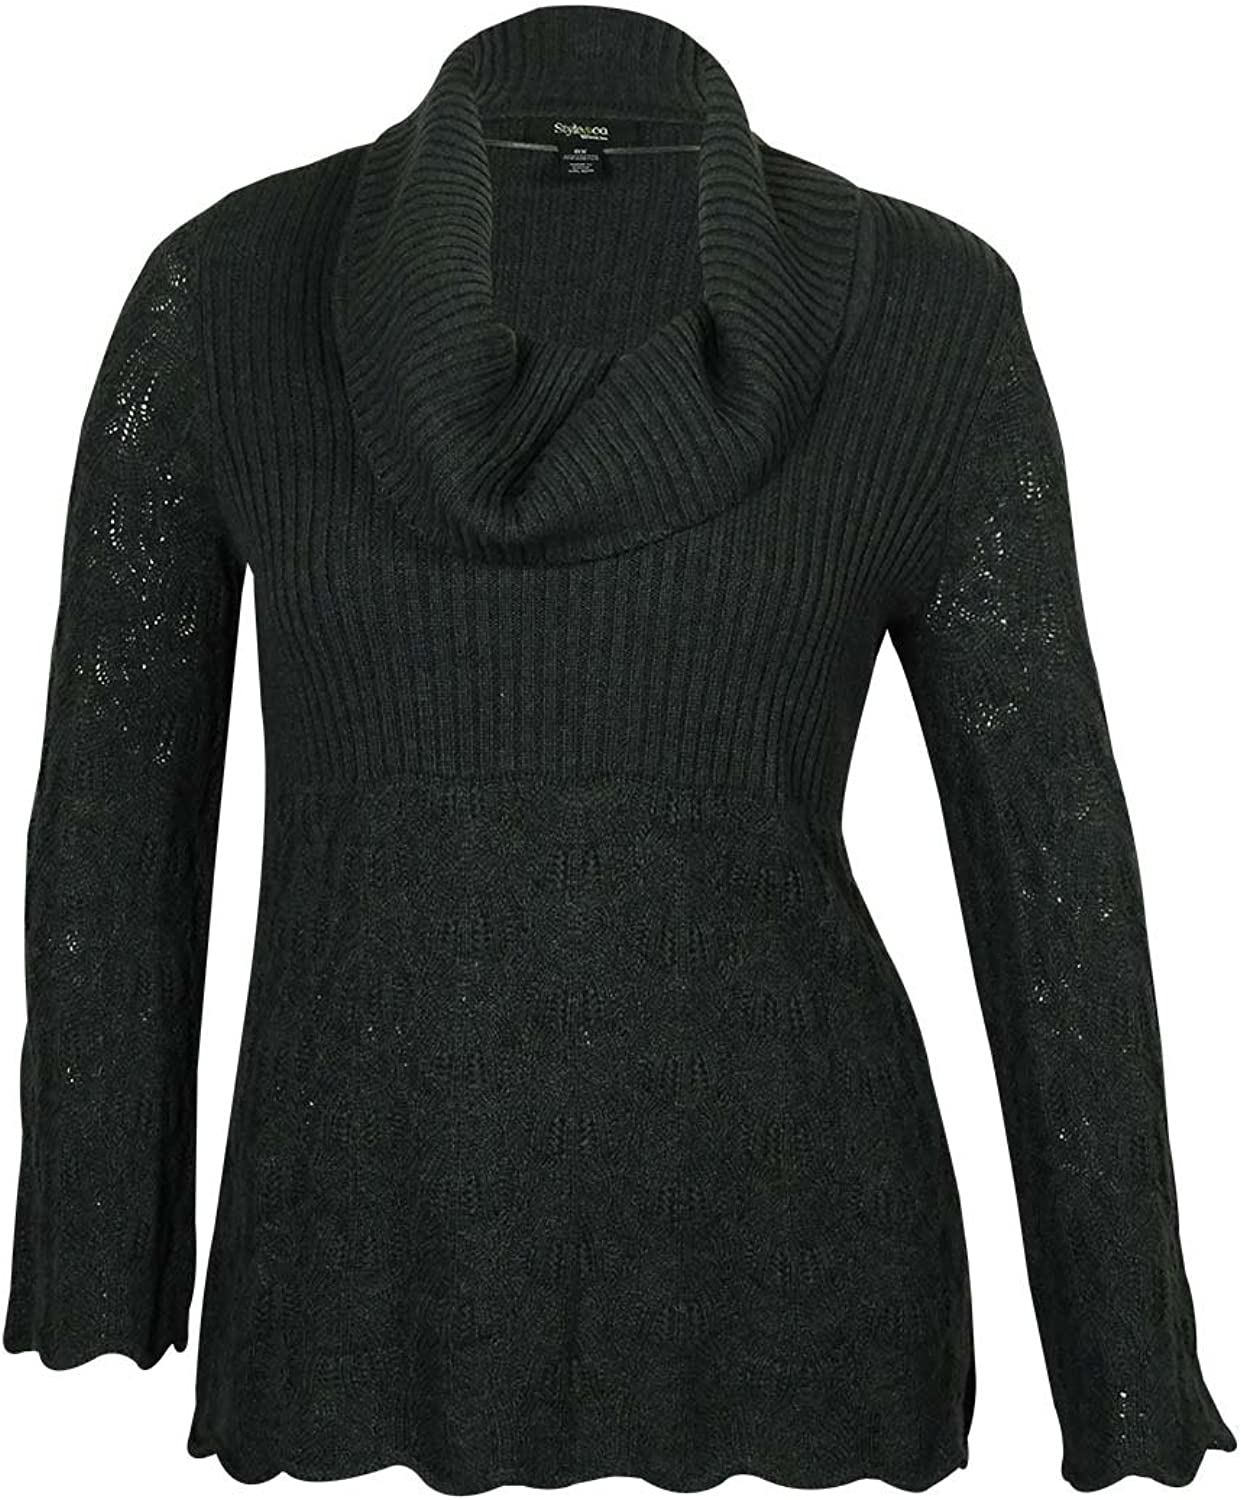 Style & Co. Women's Ribbed Crochet Sweater (PL, Charcoal)